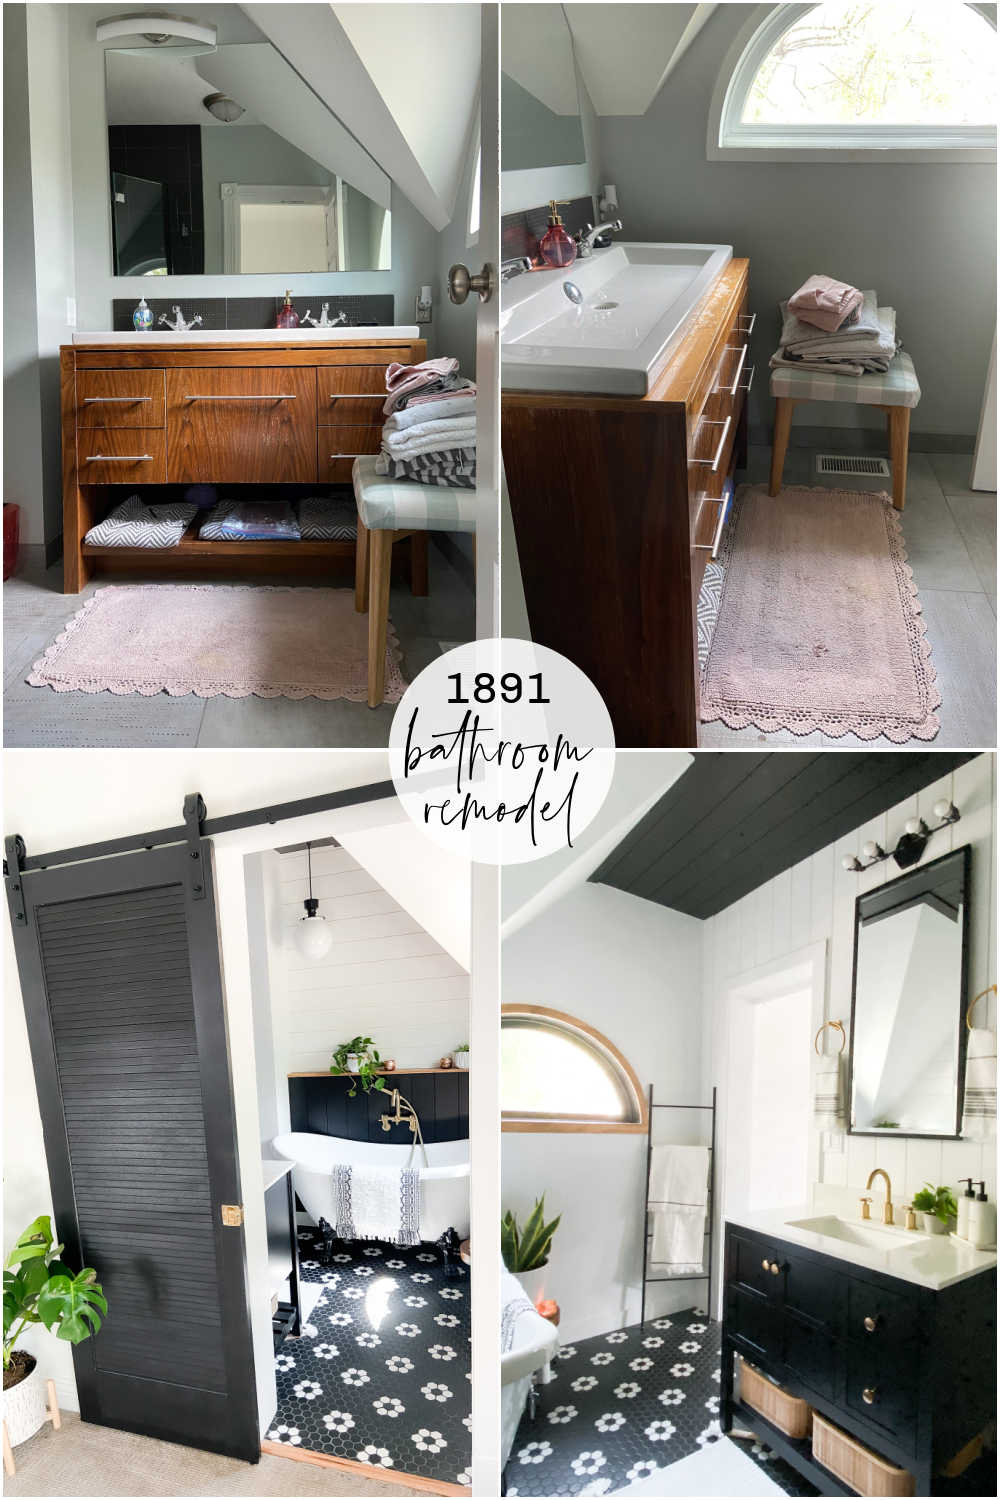 A Small Bathroom that is BIG on Organization! Ways to make a small bathroom maximize storage while maintaining a beautiful appearance!